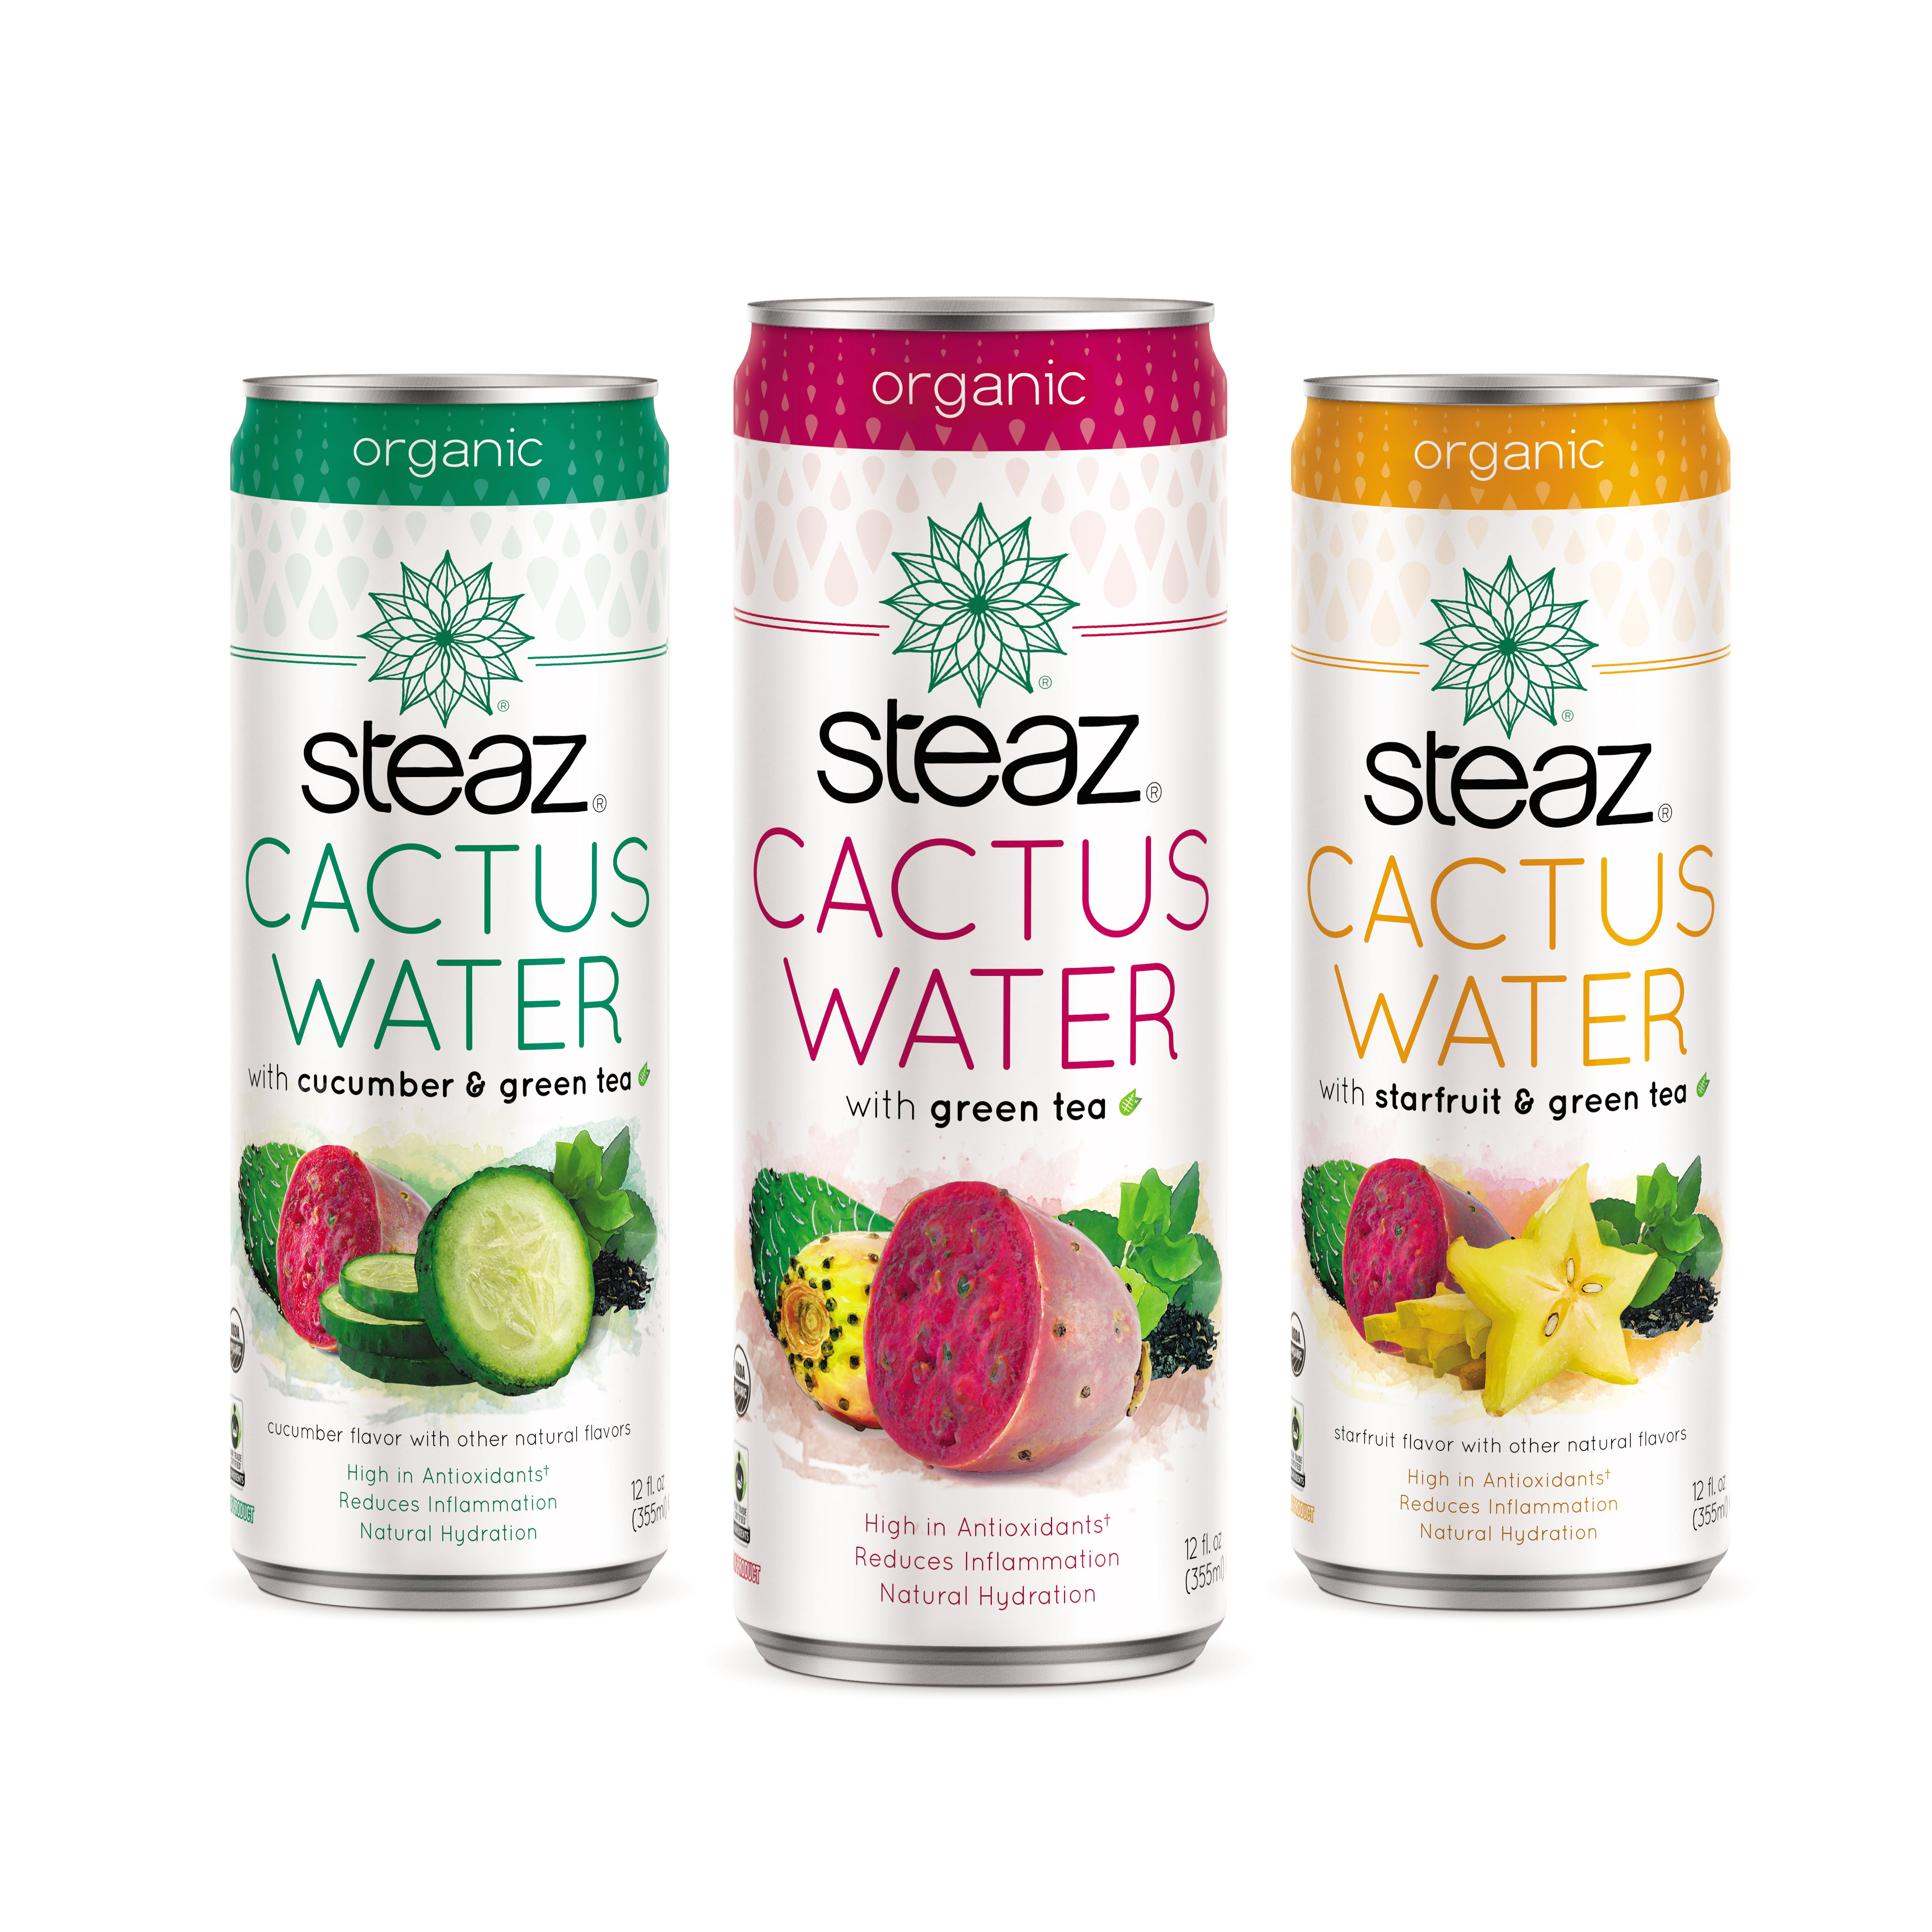 Steaz Blends Green Tea and Cactus Water For Newest Line Extension